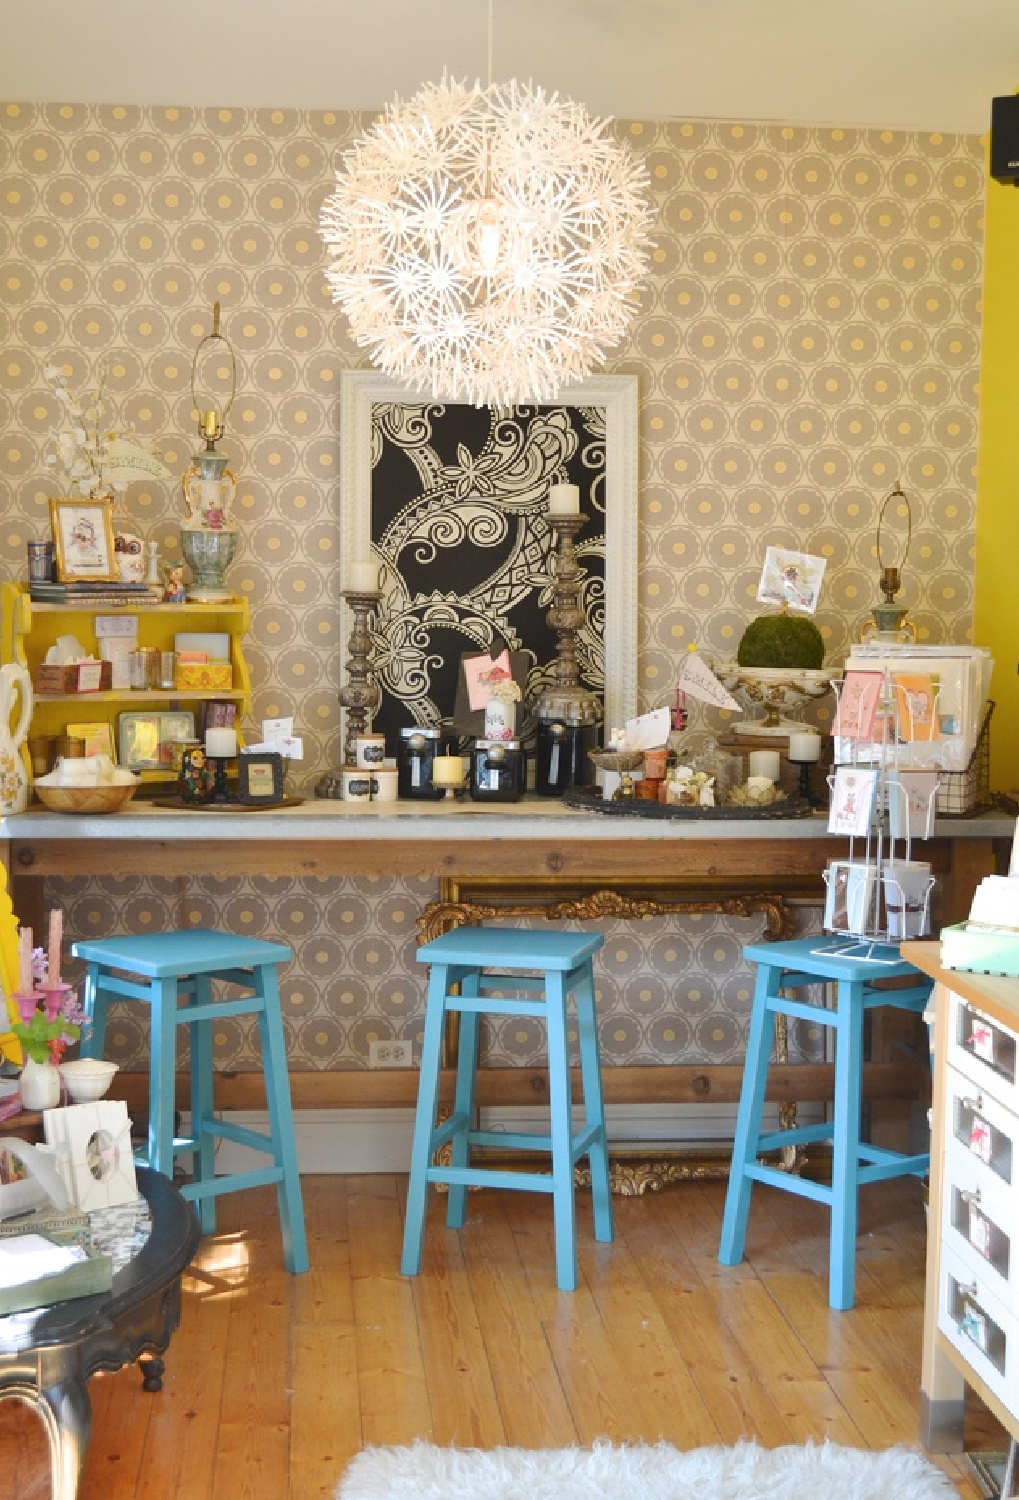 Whimsical bar with cheerful blue stools in a boho fun art studio with yellow accents - Jenny Sweeney.